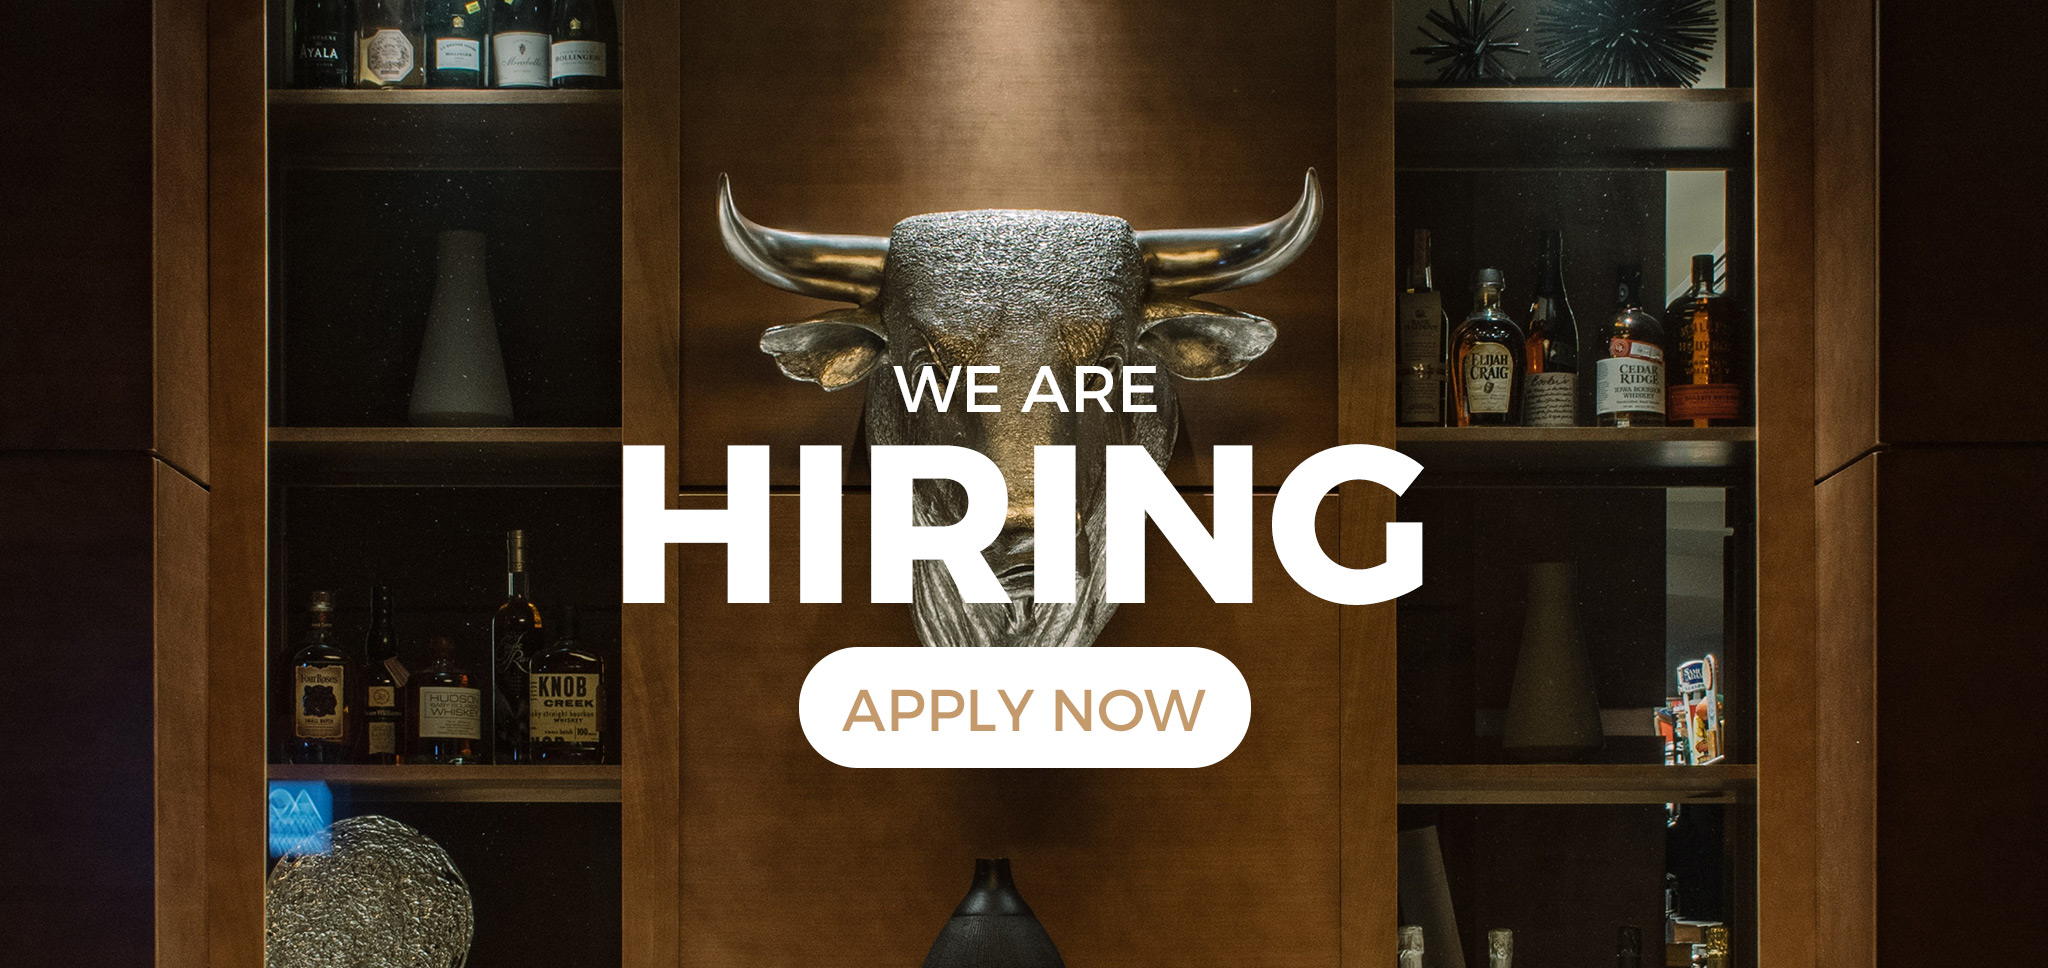 Republic on grand is now hiring